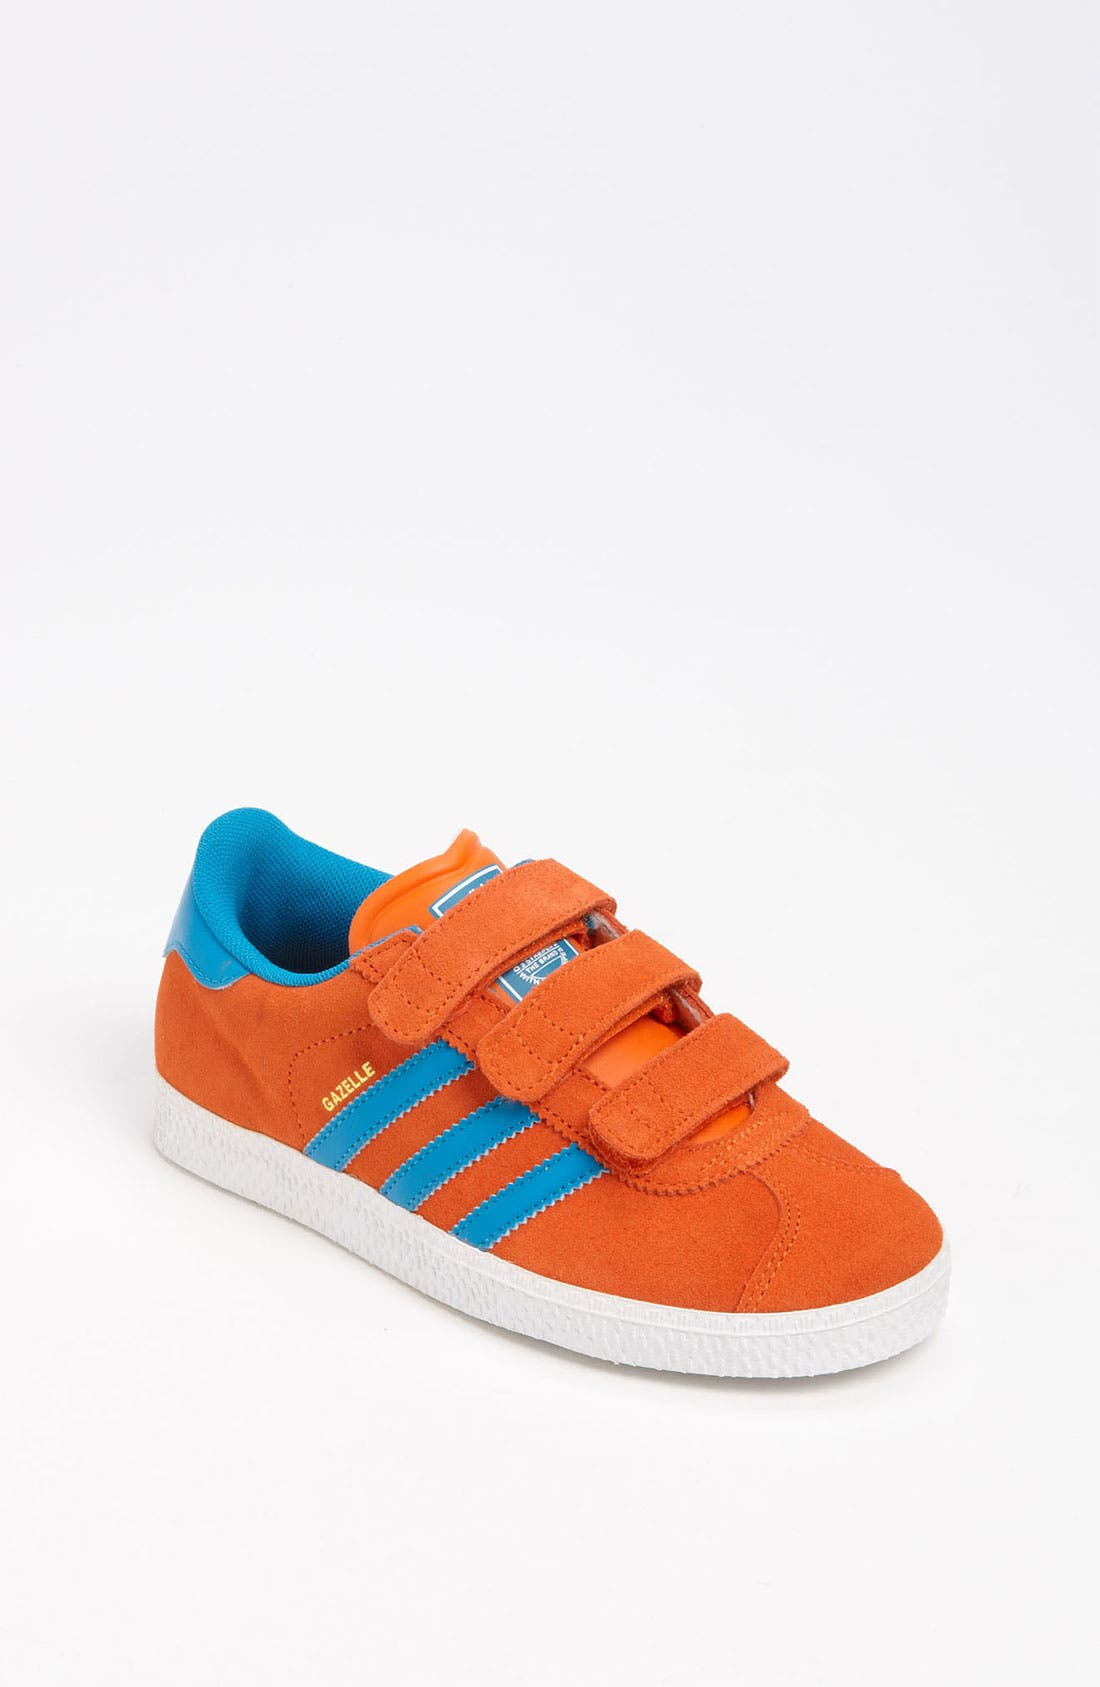 Alternate Image 1 Selected - adidas 'Gazelle 2' Sneaker (Toddler & Little Kid)